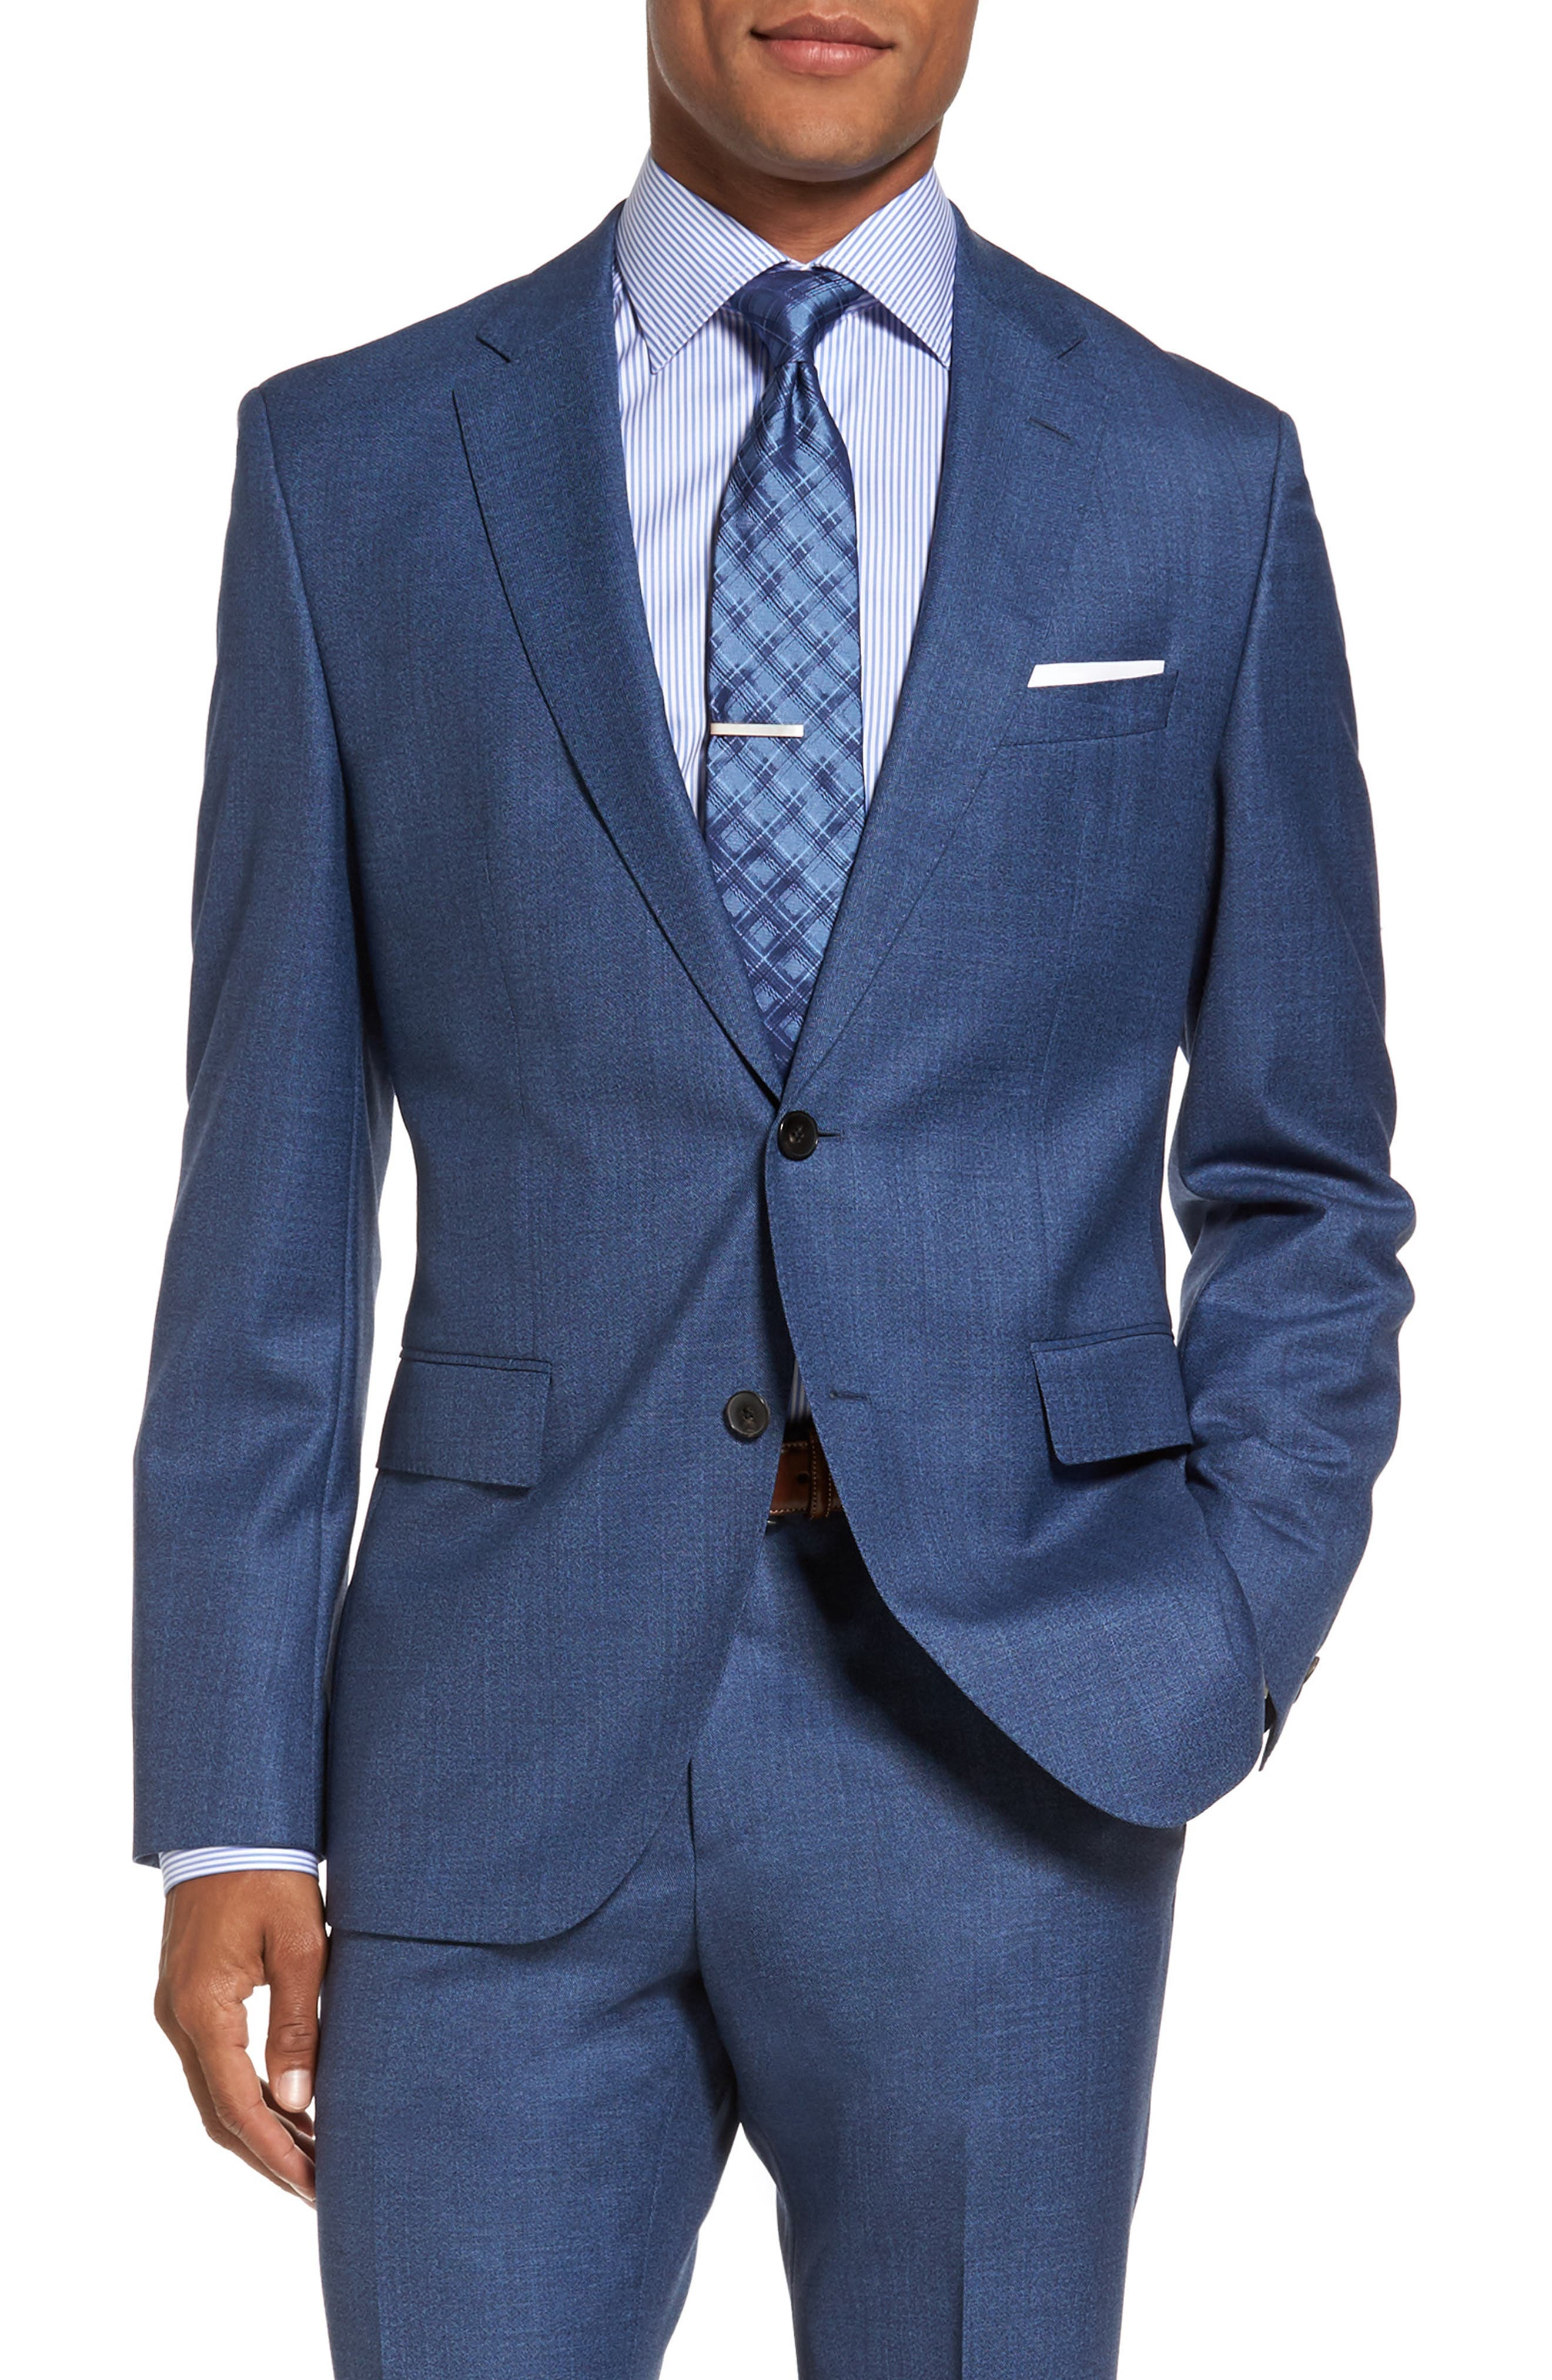 Johnstons/Lenon Classic Fit Solid Wool Suit,                             Alternate thumbnail 5, color,                             421